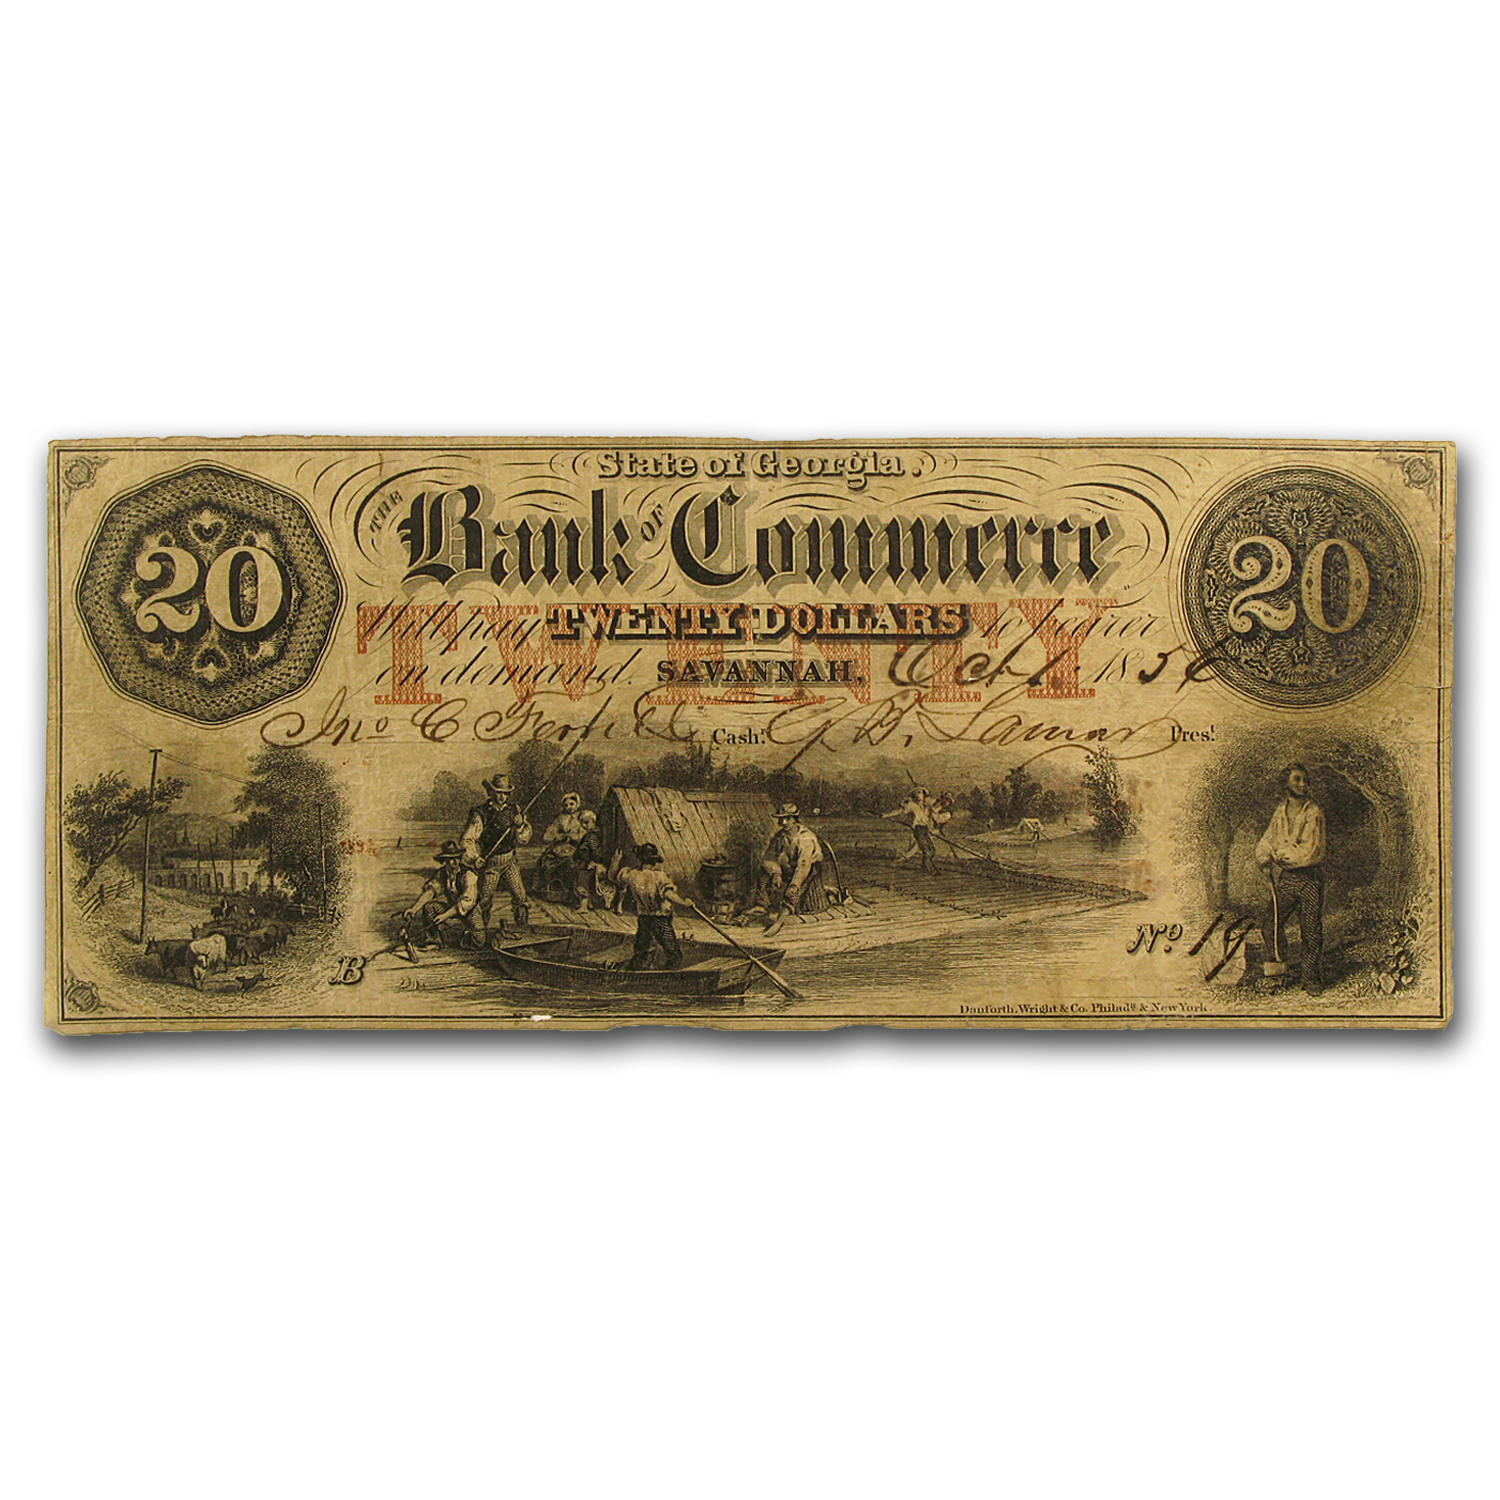 1856 Bank of Commerce, Savannah, GA $20 VF